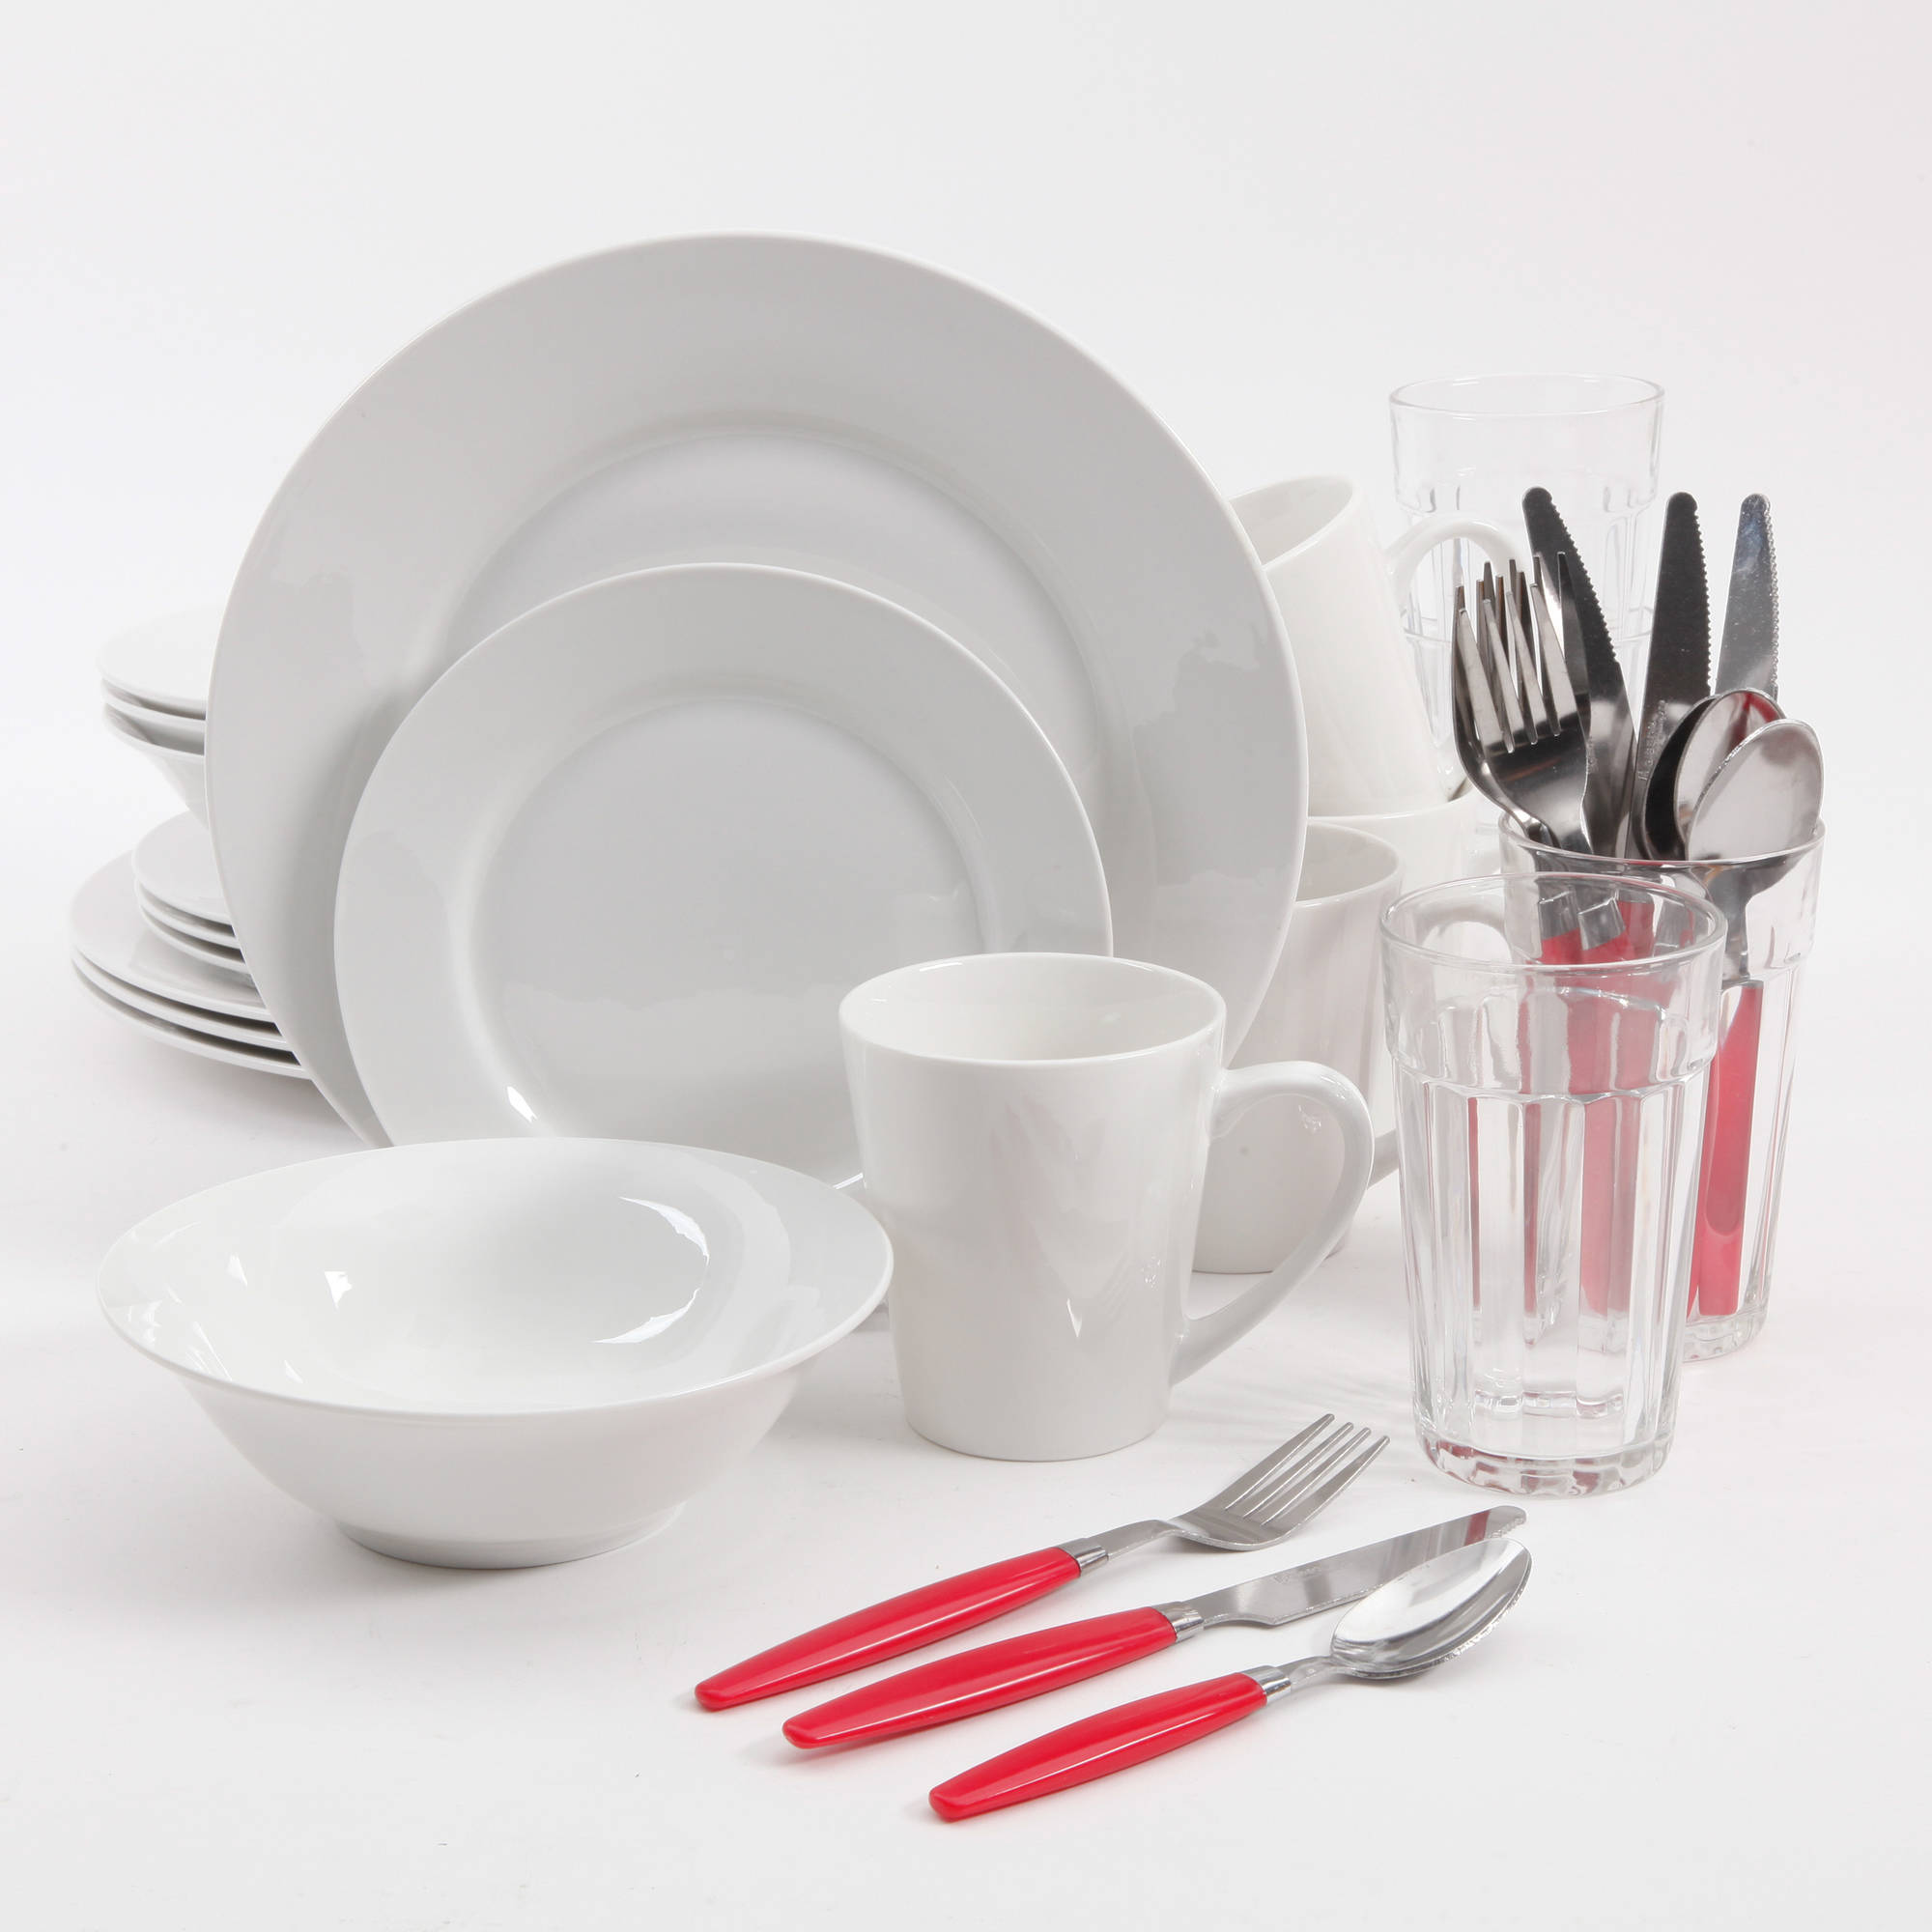 Gibson Home Regal White II 32-Piece Dinnerware Combo Set, White